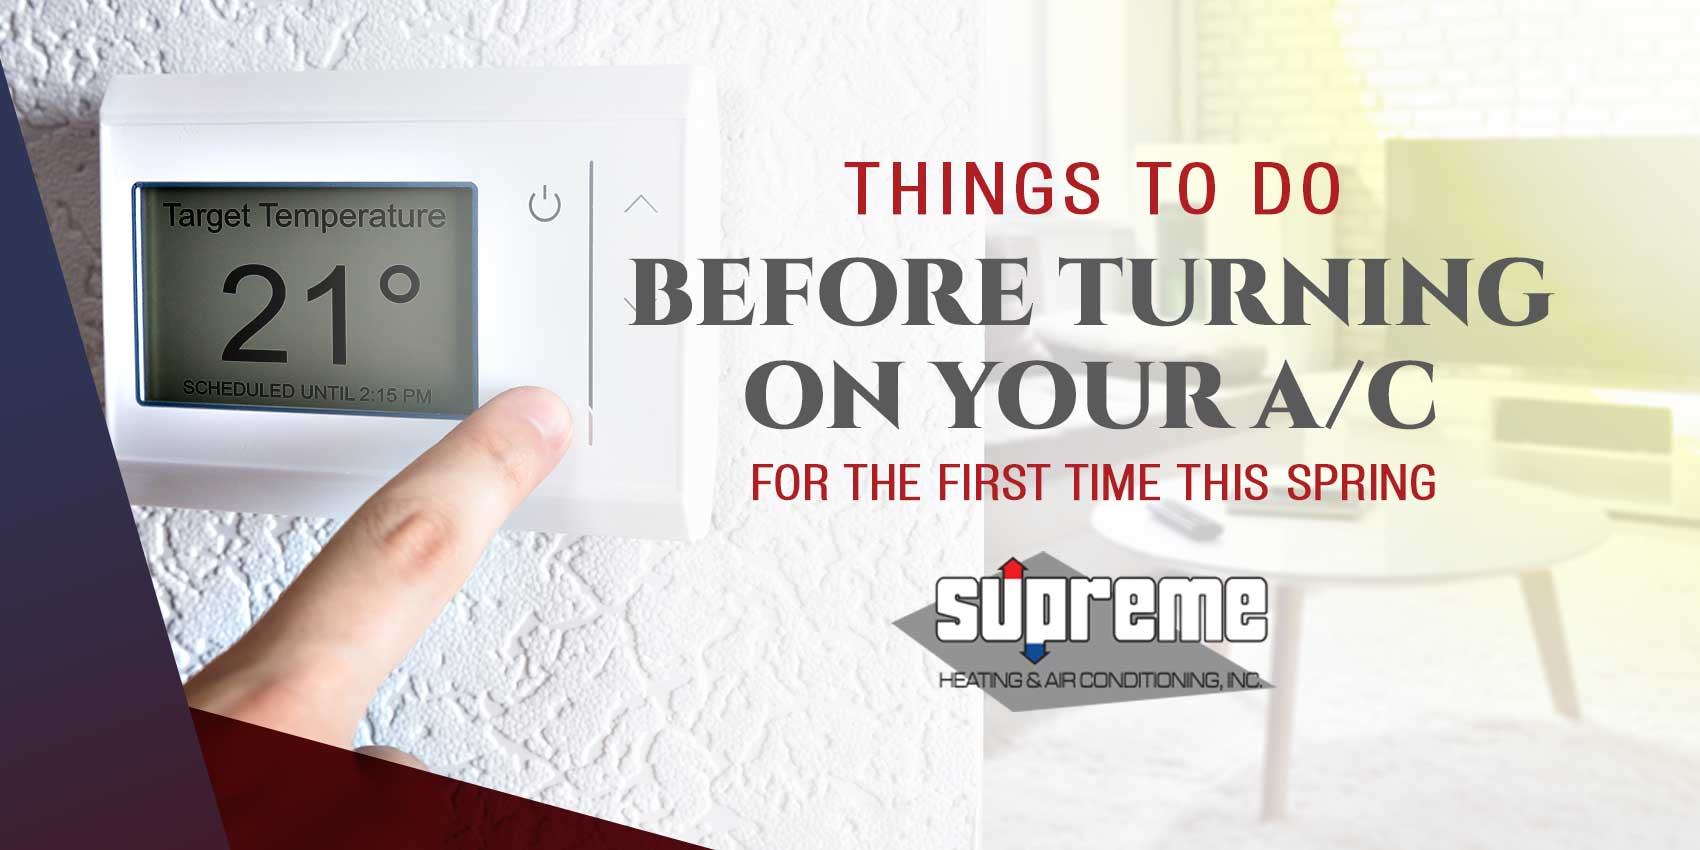 Things to Do Before Turning On Your A/C For the First Time This Spring